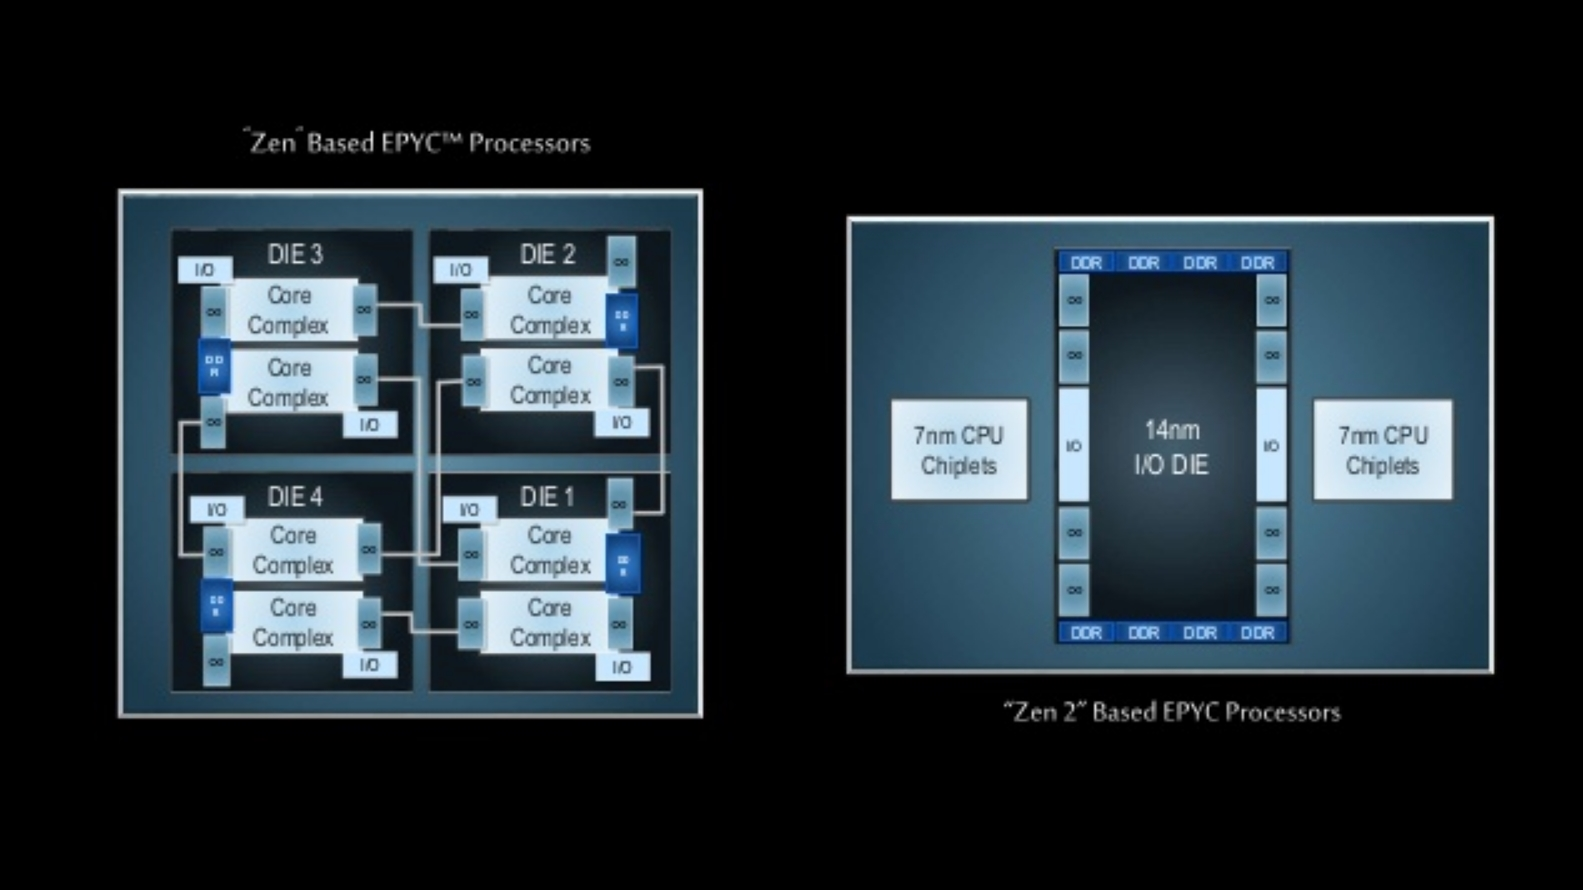 """AMD's Zen 2 CPUs mix 7nm and 14nm silicon in a """"revolutionary chiplet design"""" 